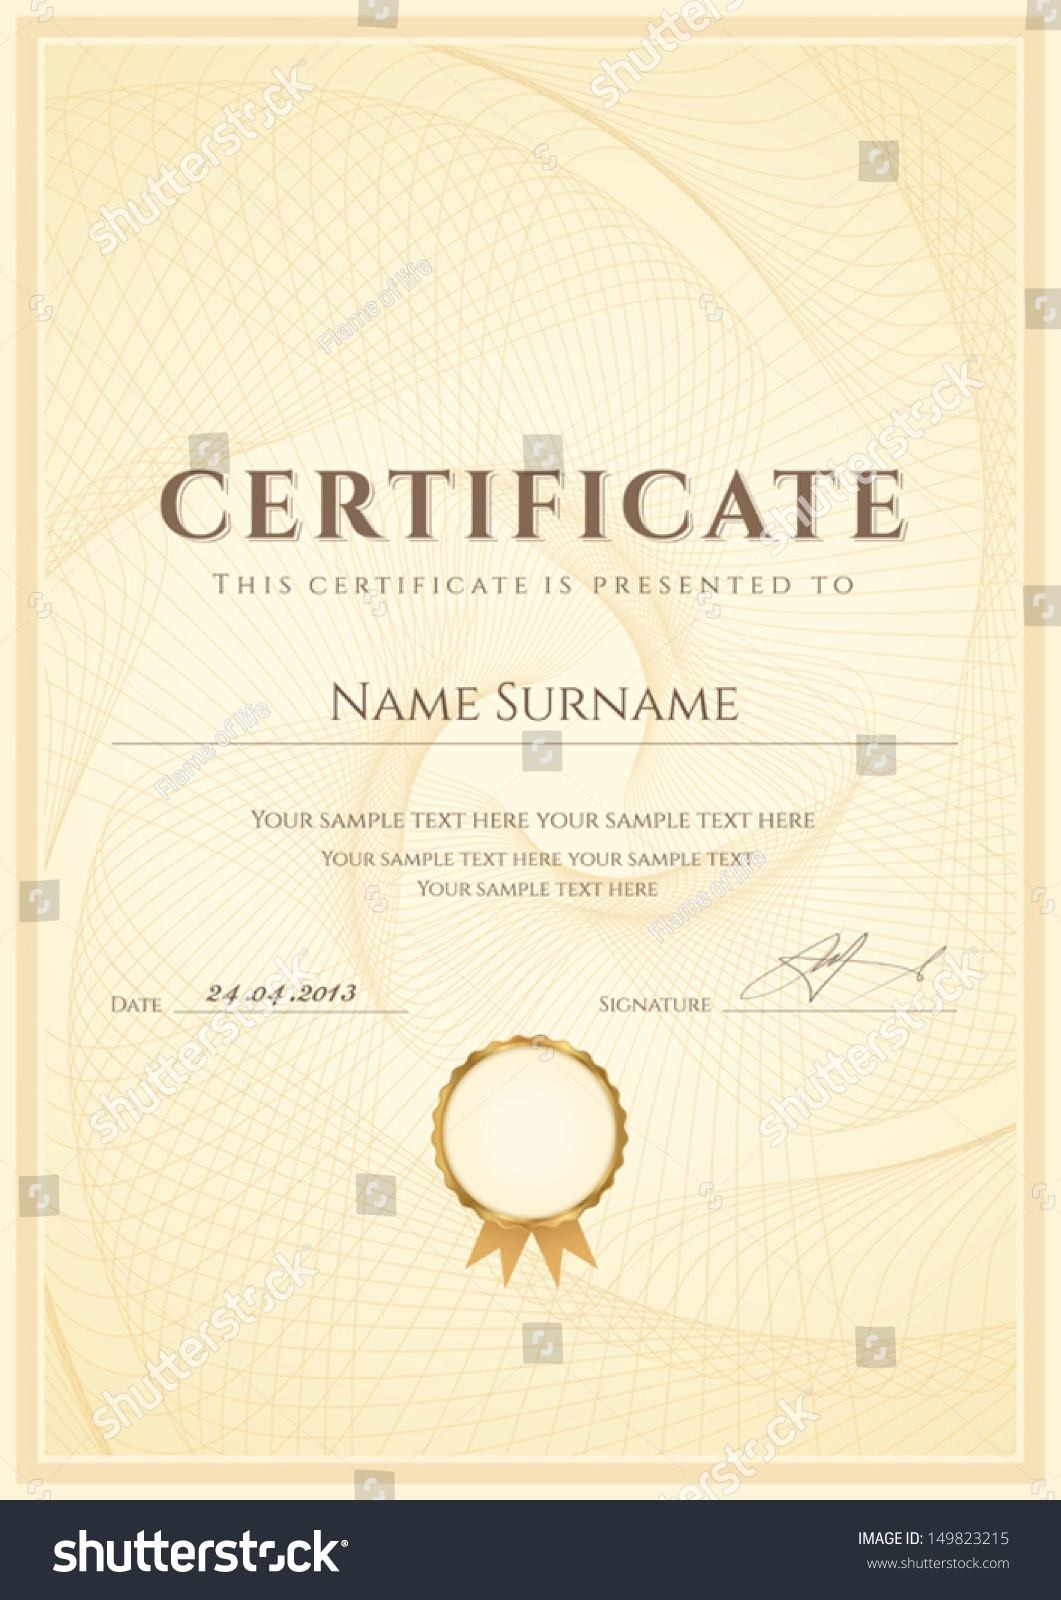 certificate of degree templates - certificate diploma completion design template background